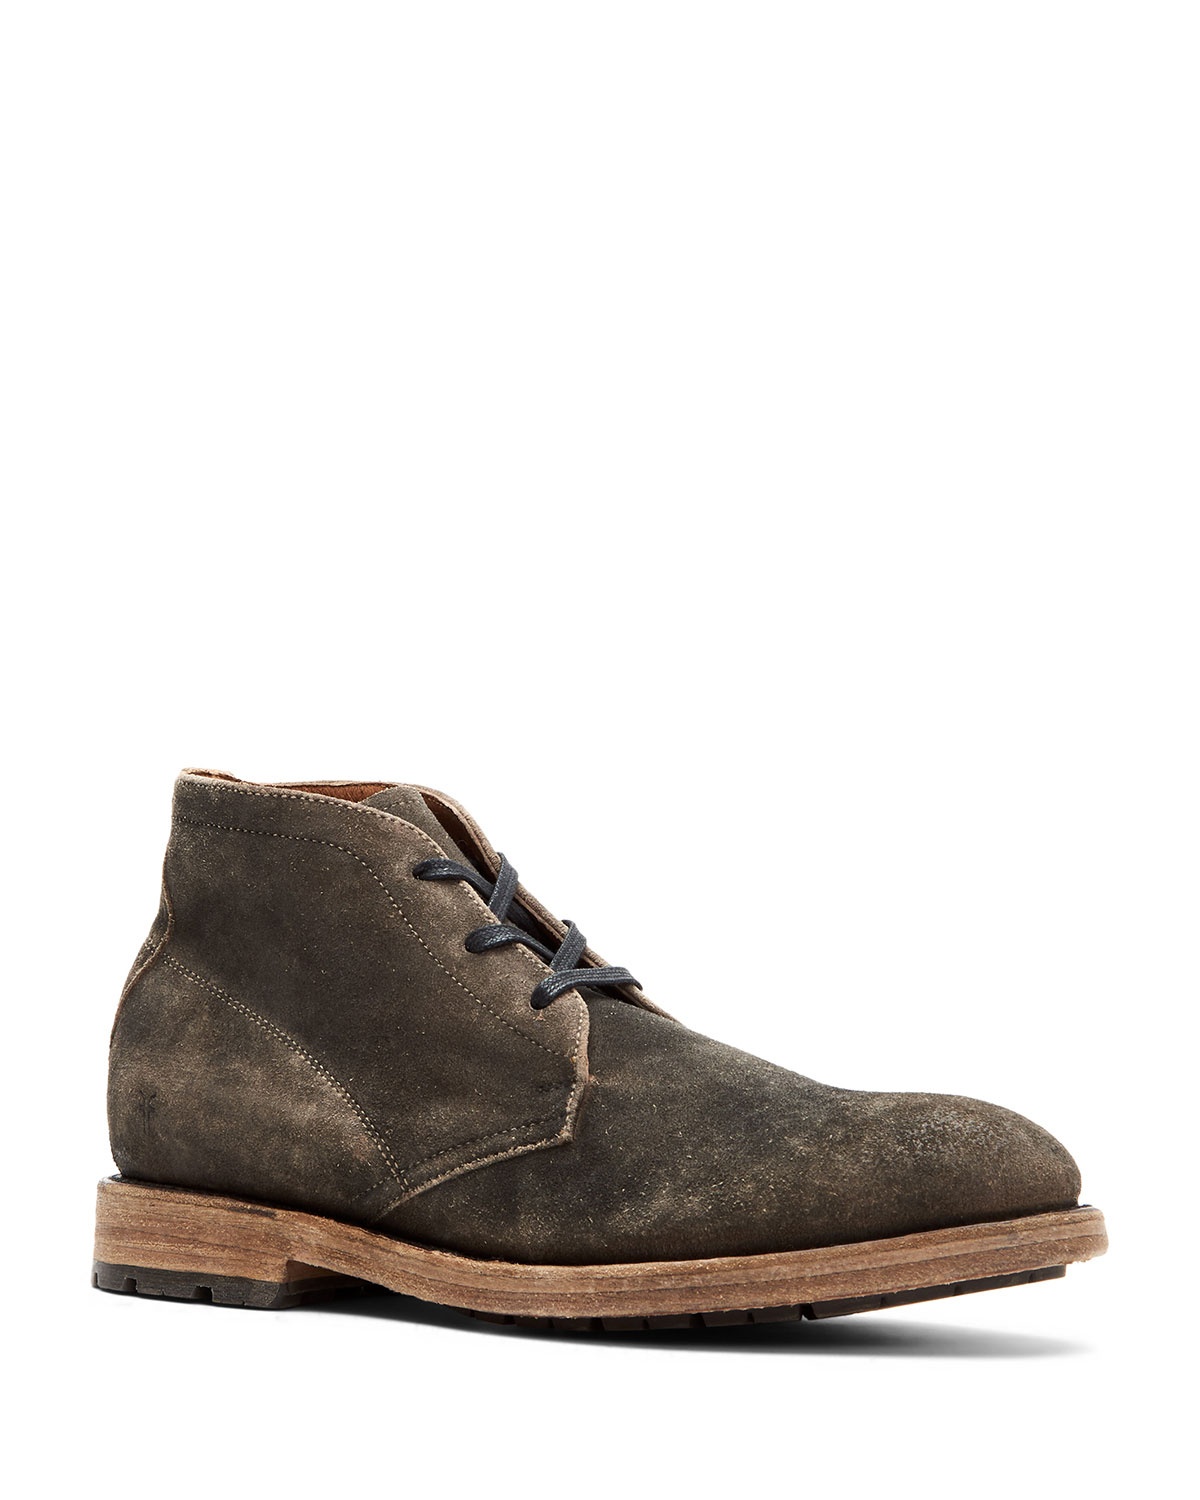 Men's Bowery Distressed Suede Chukka Boots